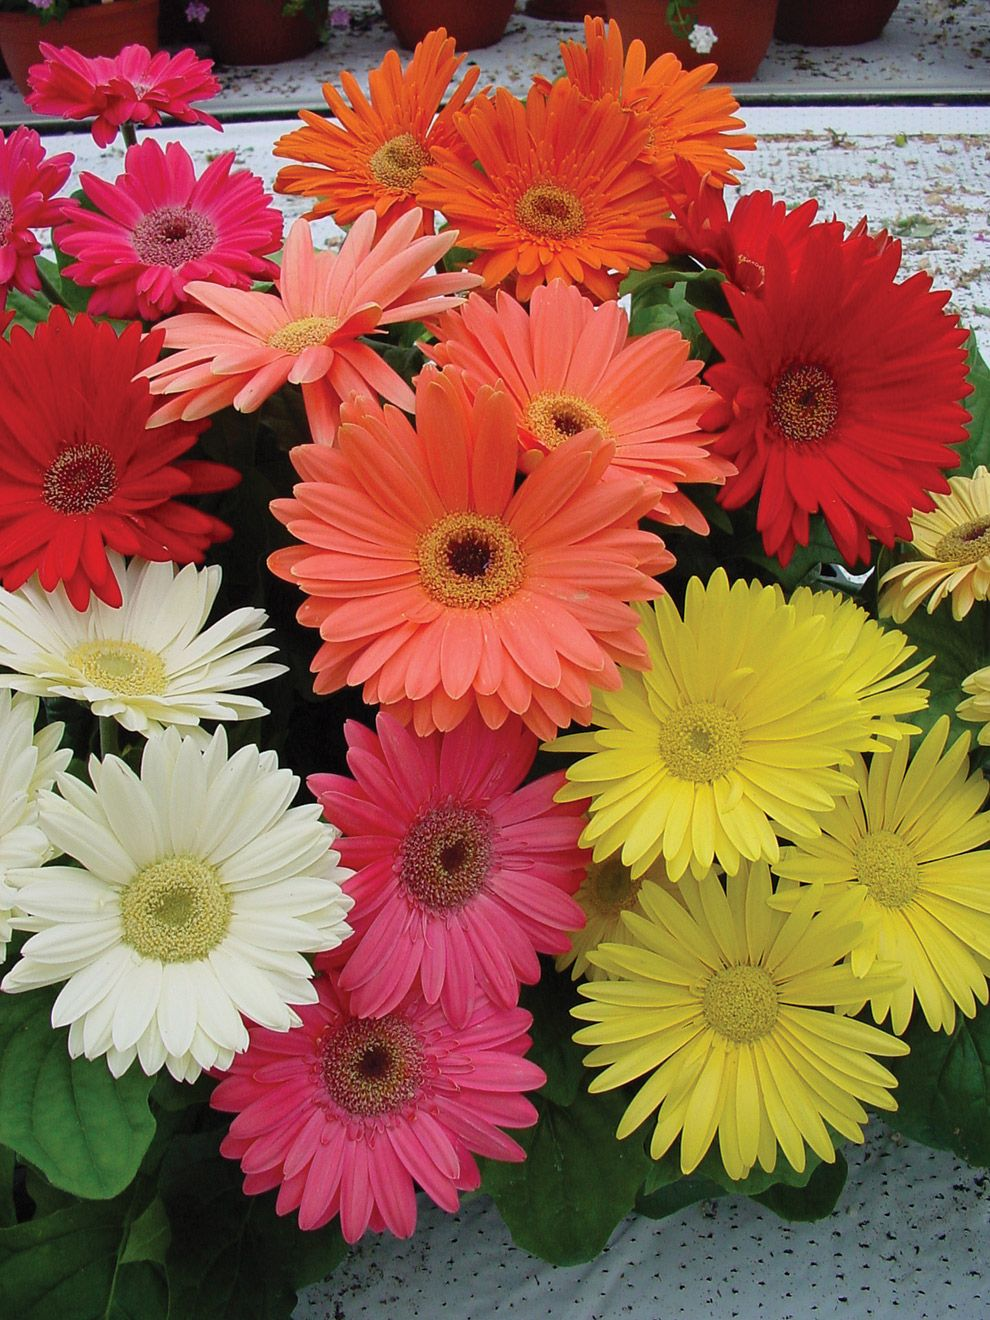 Gerberas Sun Rays On Stems Flower Seeds Gerbera Flower Gerbera Daisy Care